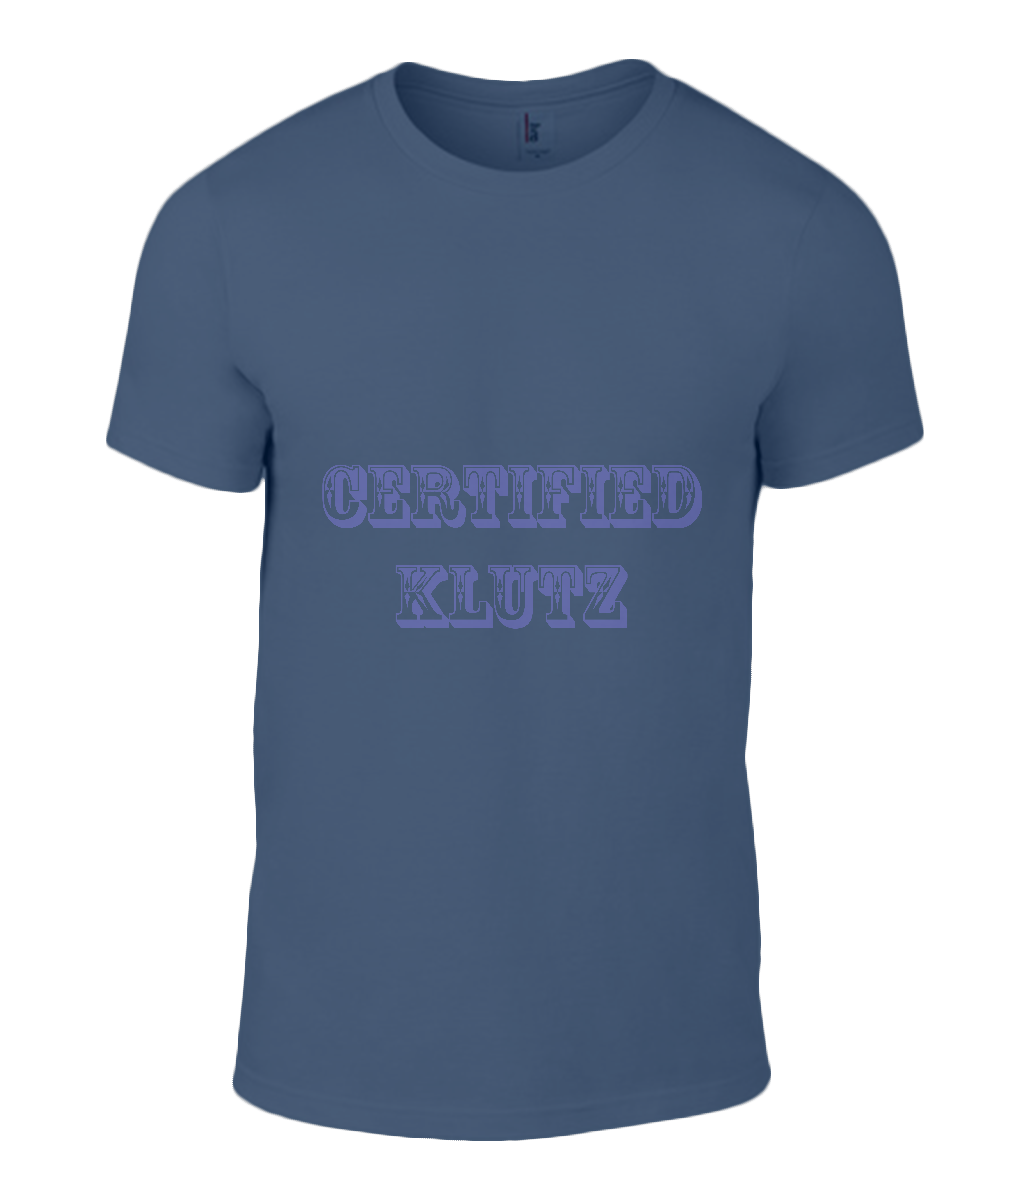 Round Neck T-Shirt - Certified Klutz - Lokshen Pudding UK - Navy